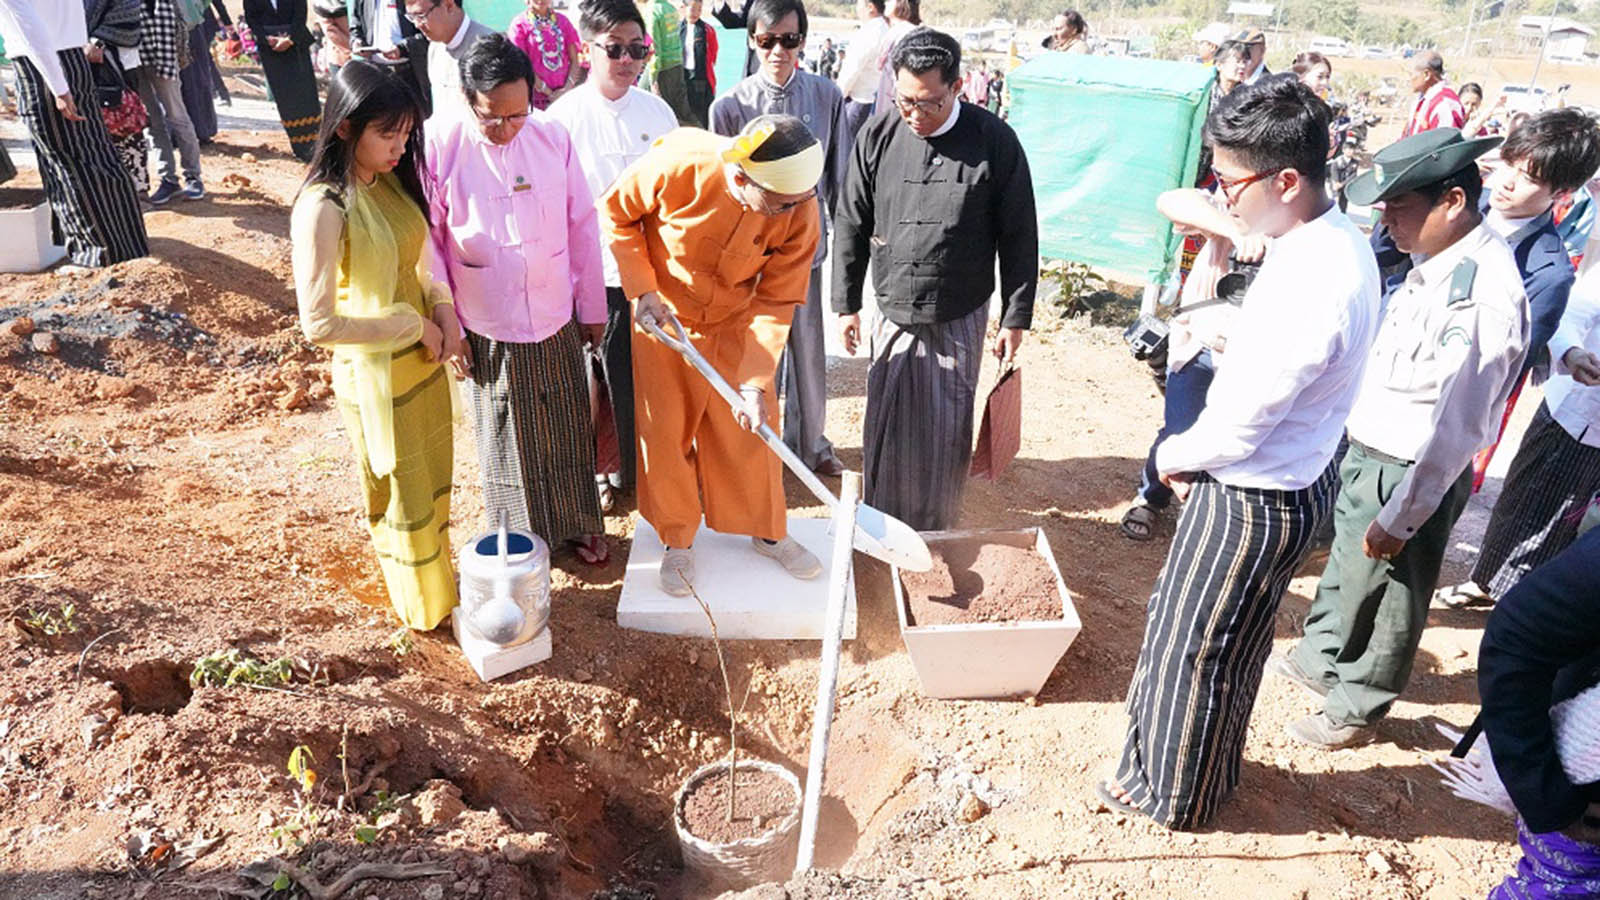 Union Minister U Ohn Maung plants a cherry tree at the 4th Cherry Trees Planting Ceremony to mark the 68th Anniversary of Kayah State at the Buddha Park in Loikaw, Kayah State, yesterday. Photo: MNA